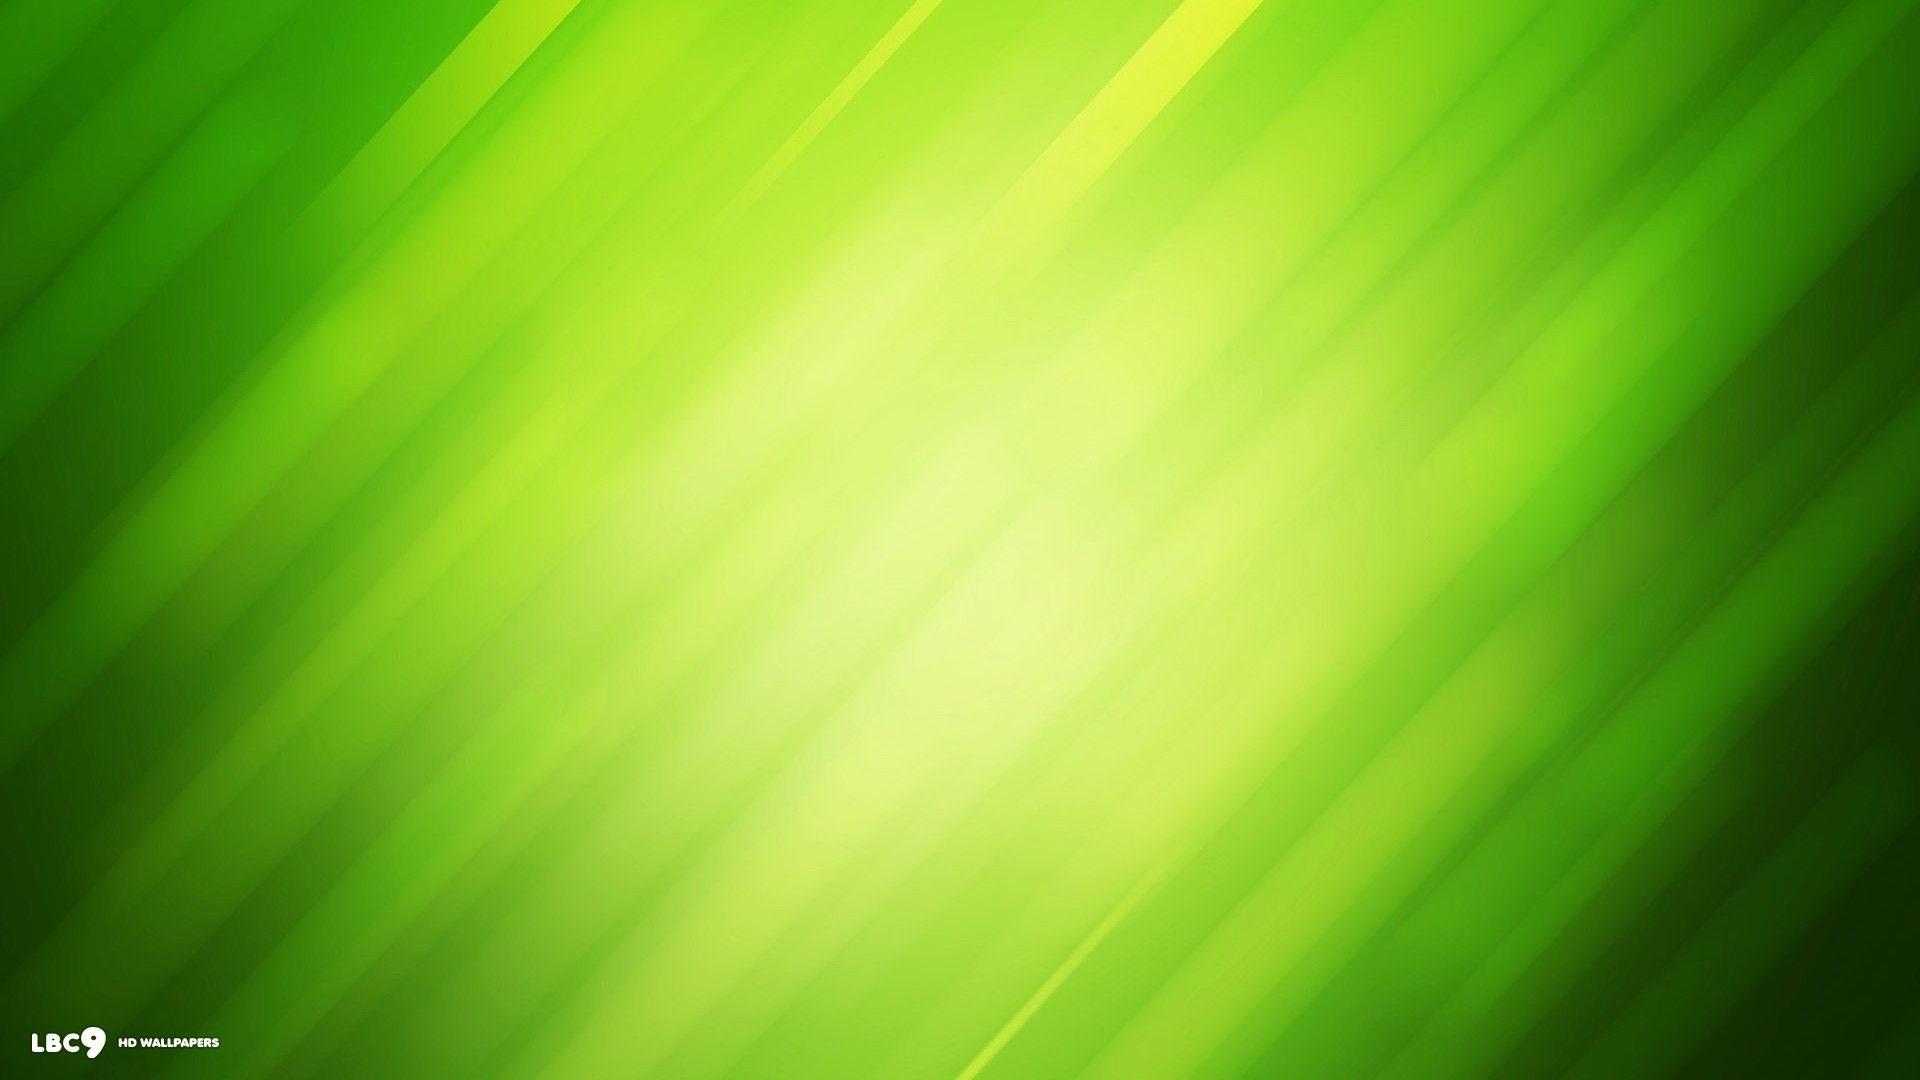 green abstract lines wallpaper 2/4 | abstract hd backgrounds